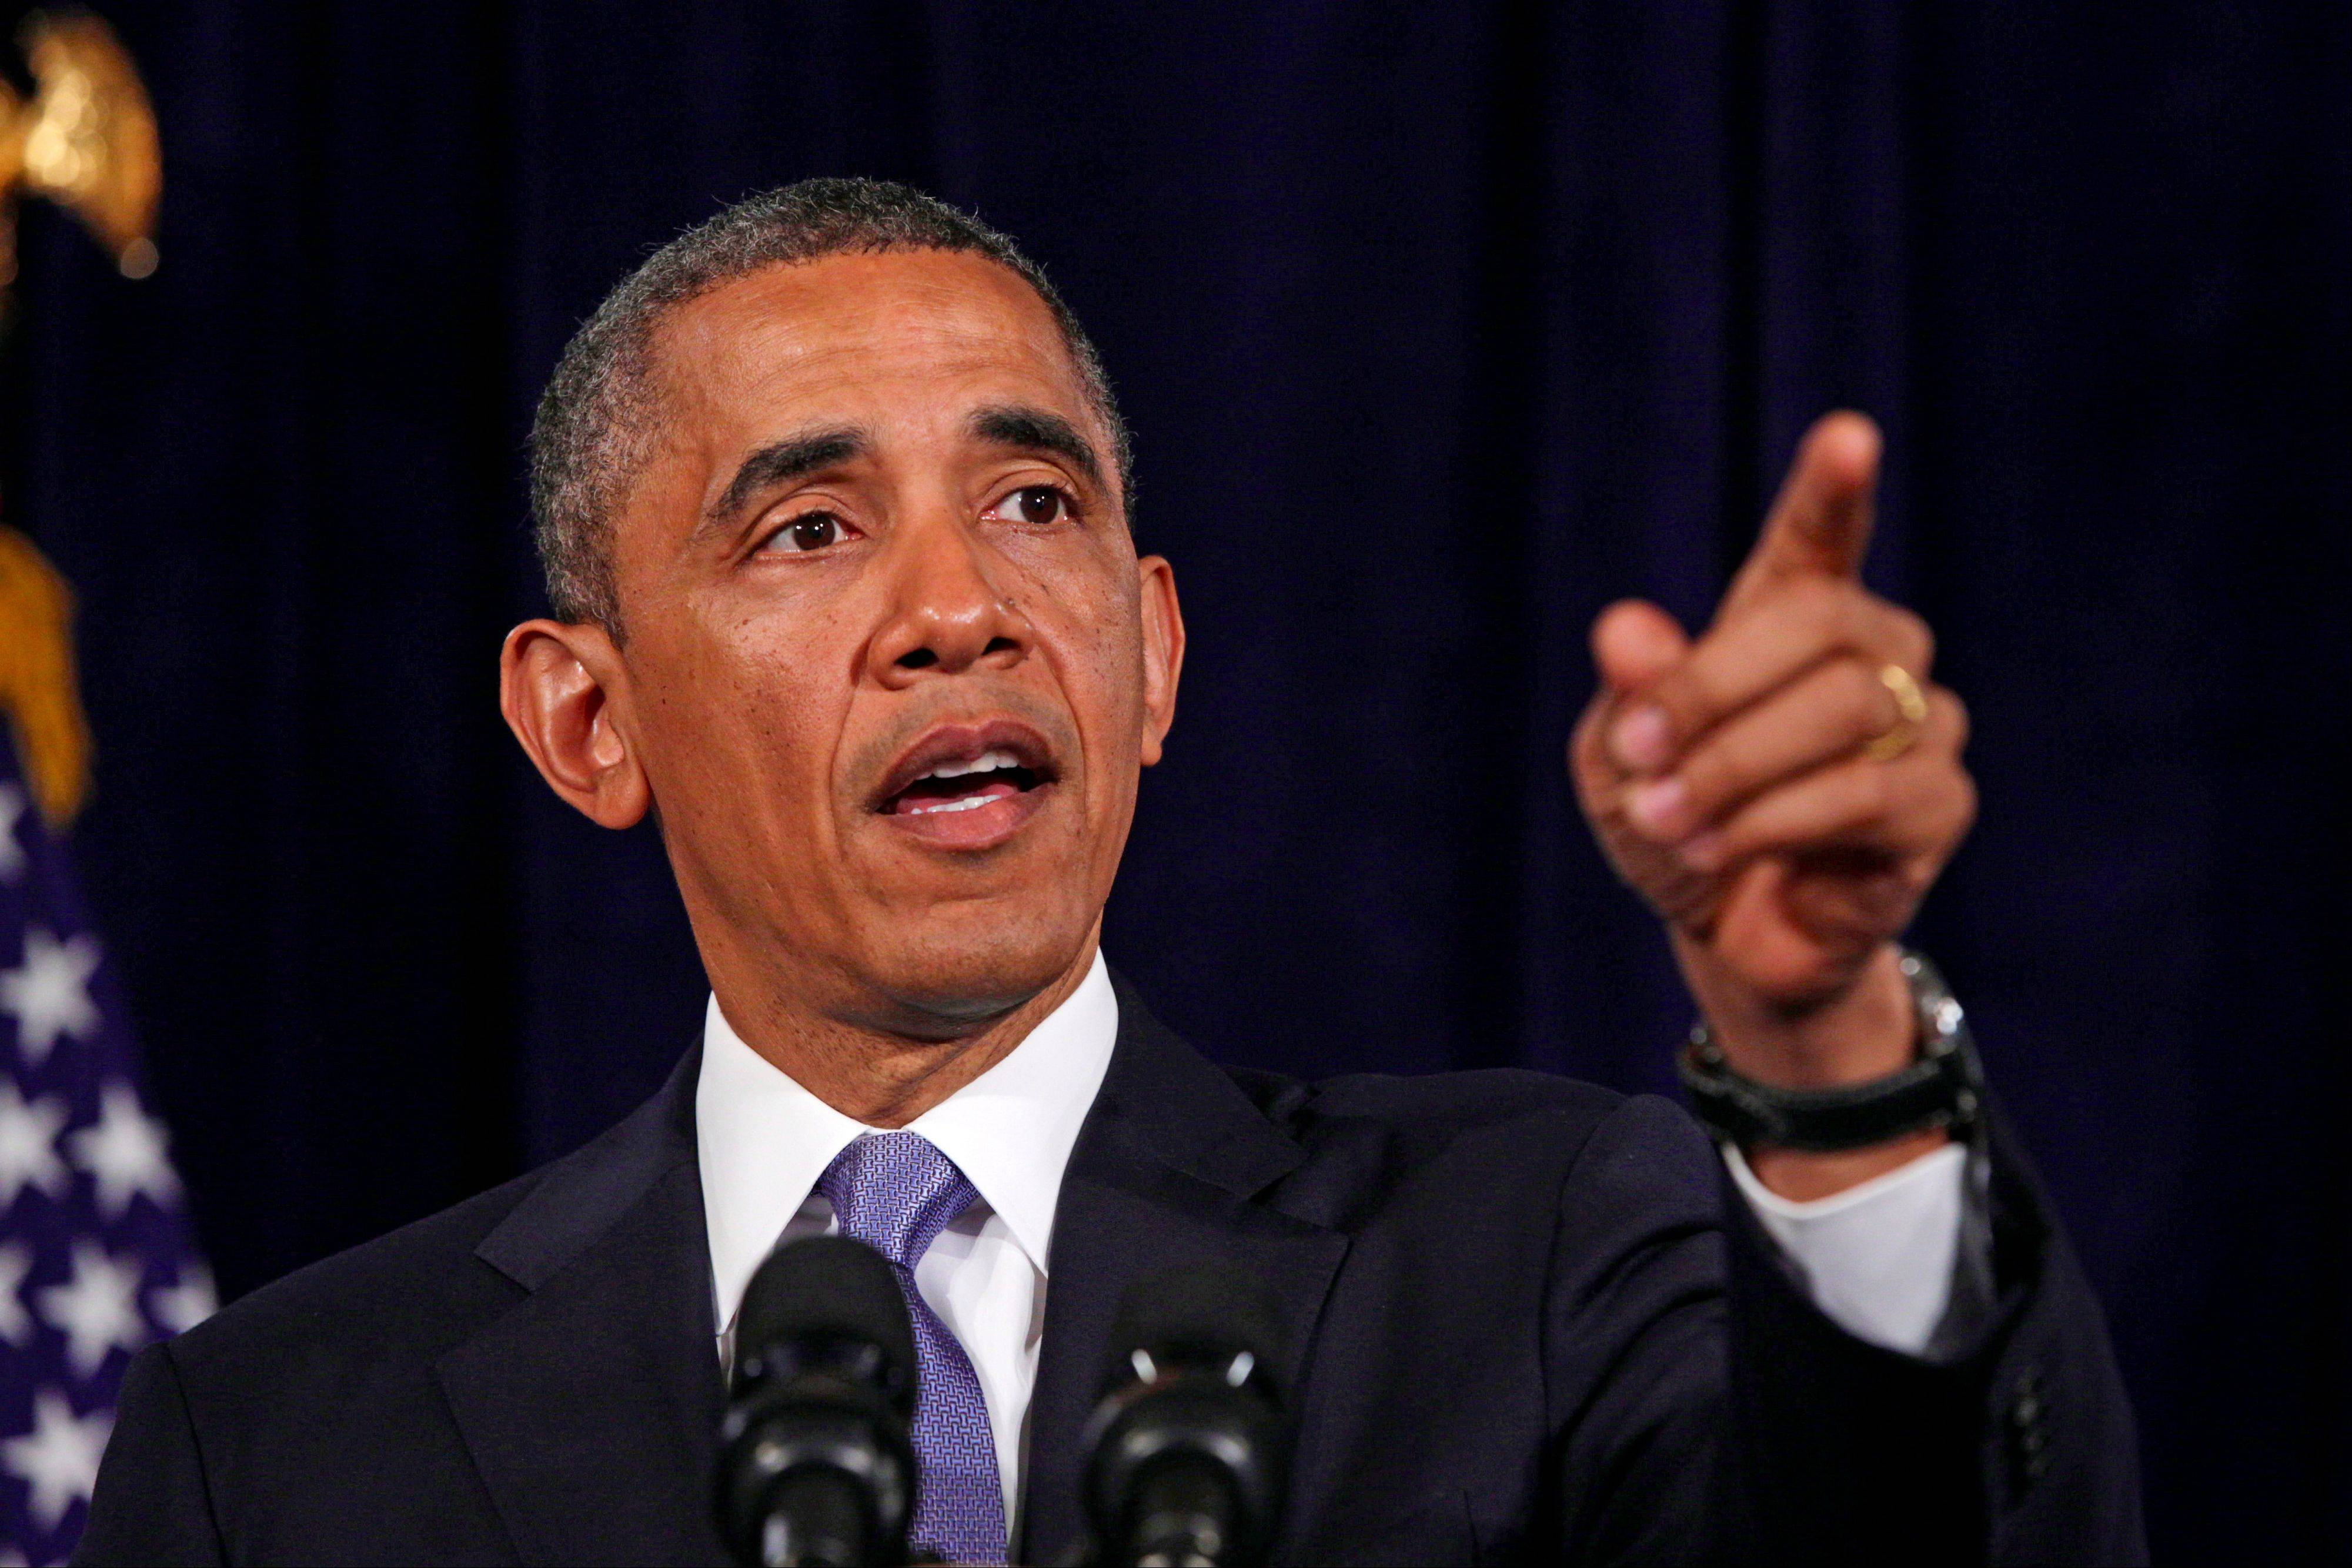 Obama pitching new health care law in California